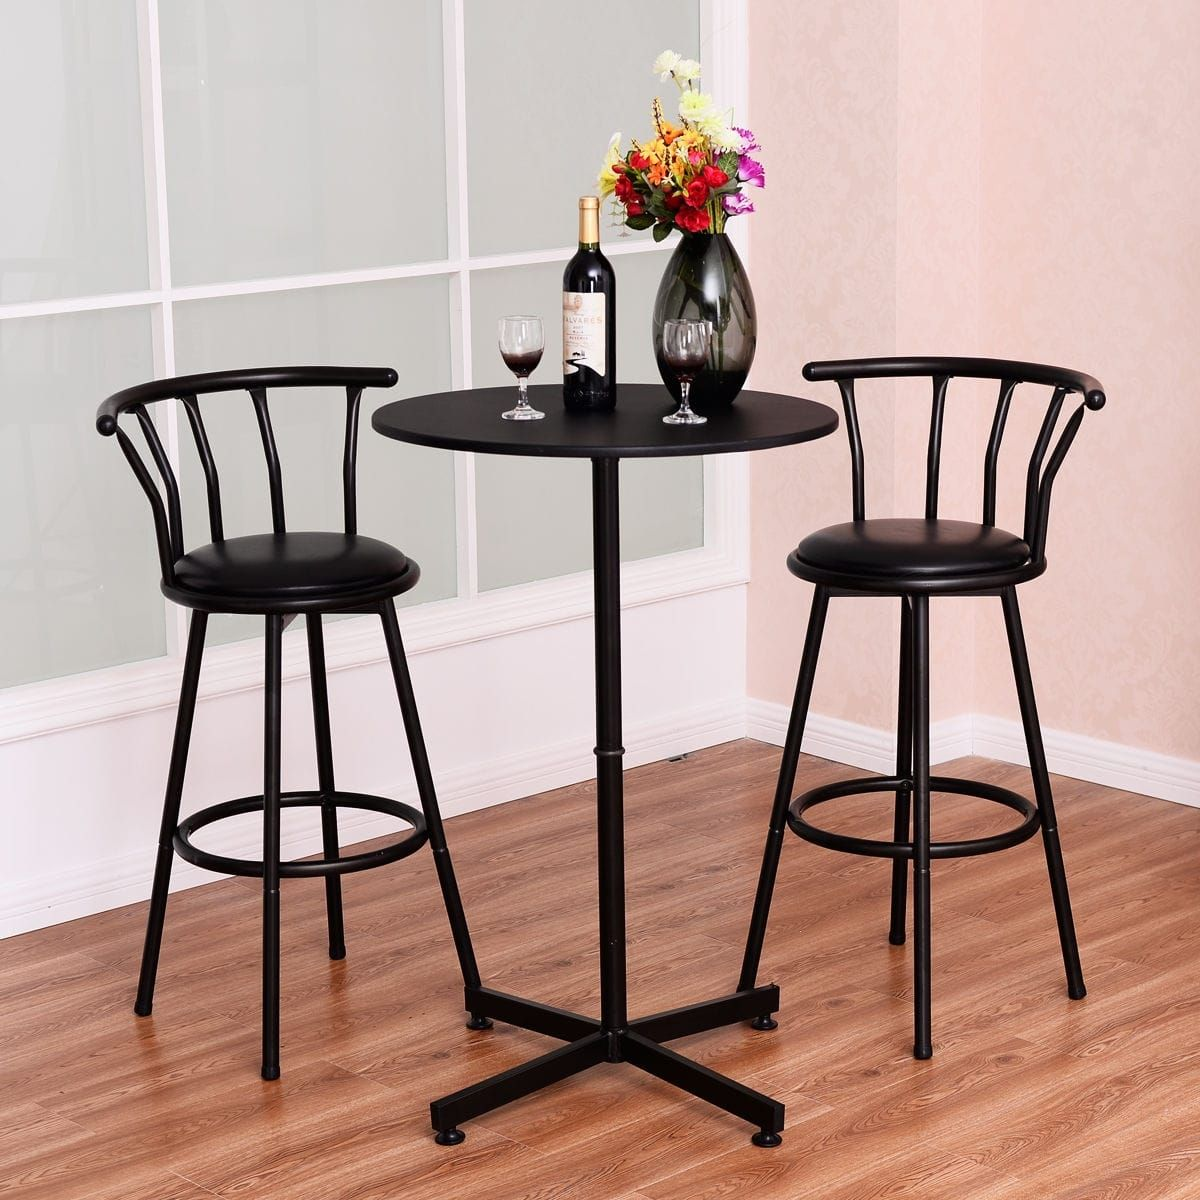 Costway 3 Piece Bar Table Set with 2 Stools Bistro Pub ...